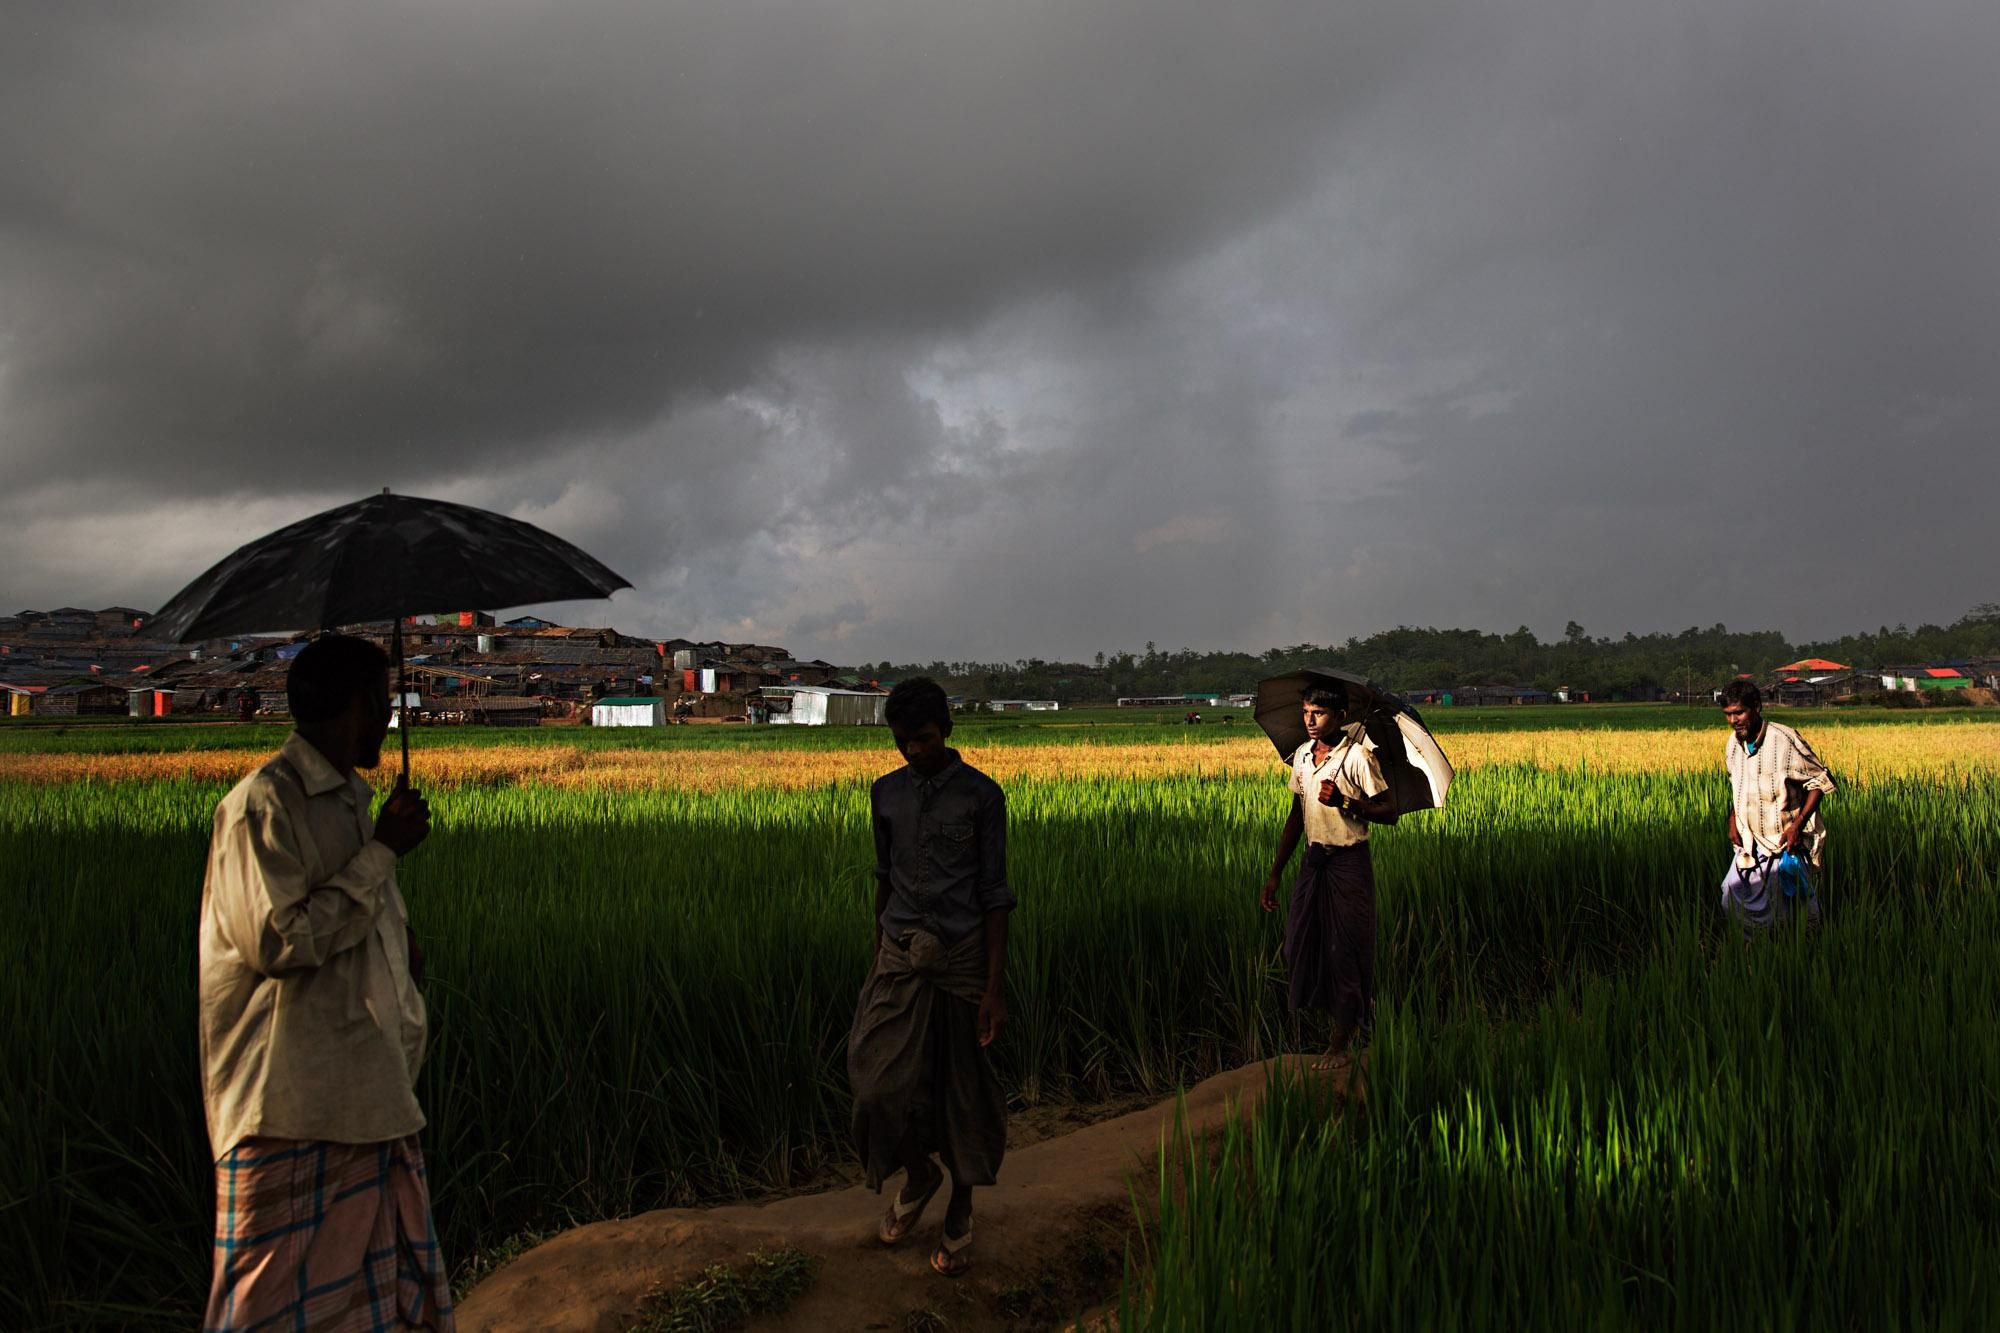 Rohingya refugees walk through a field in a camp outside of Cox's Bazar, Bangladesh.